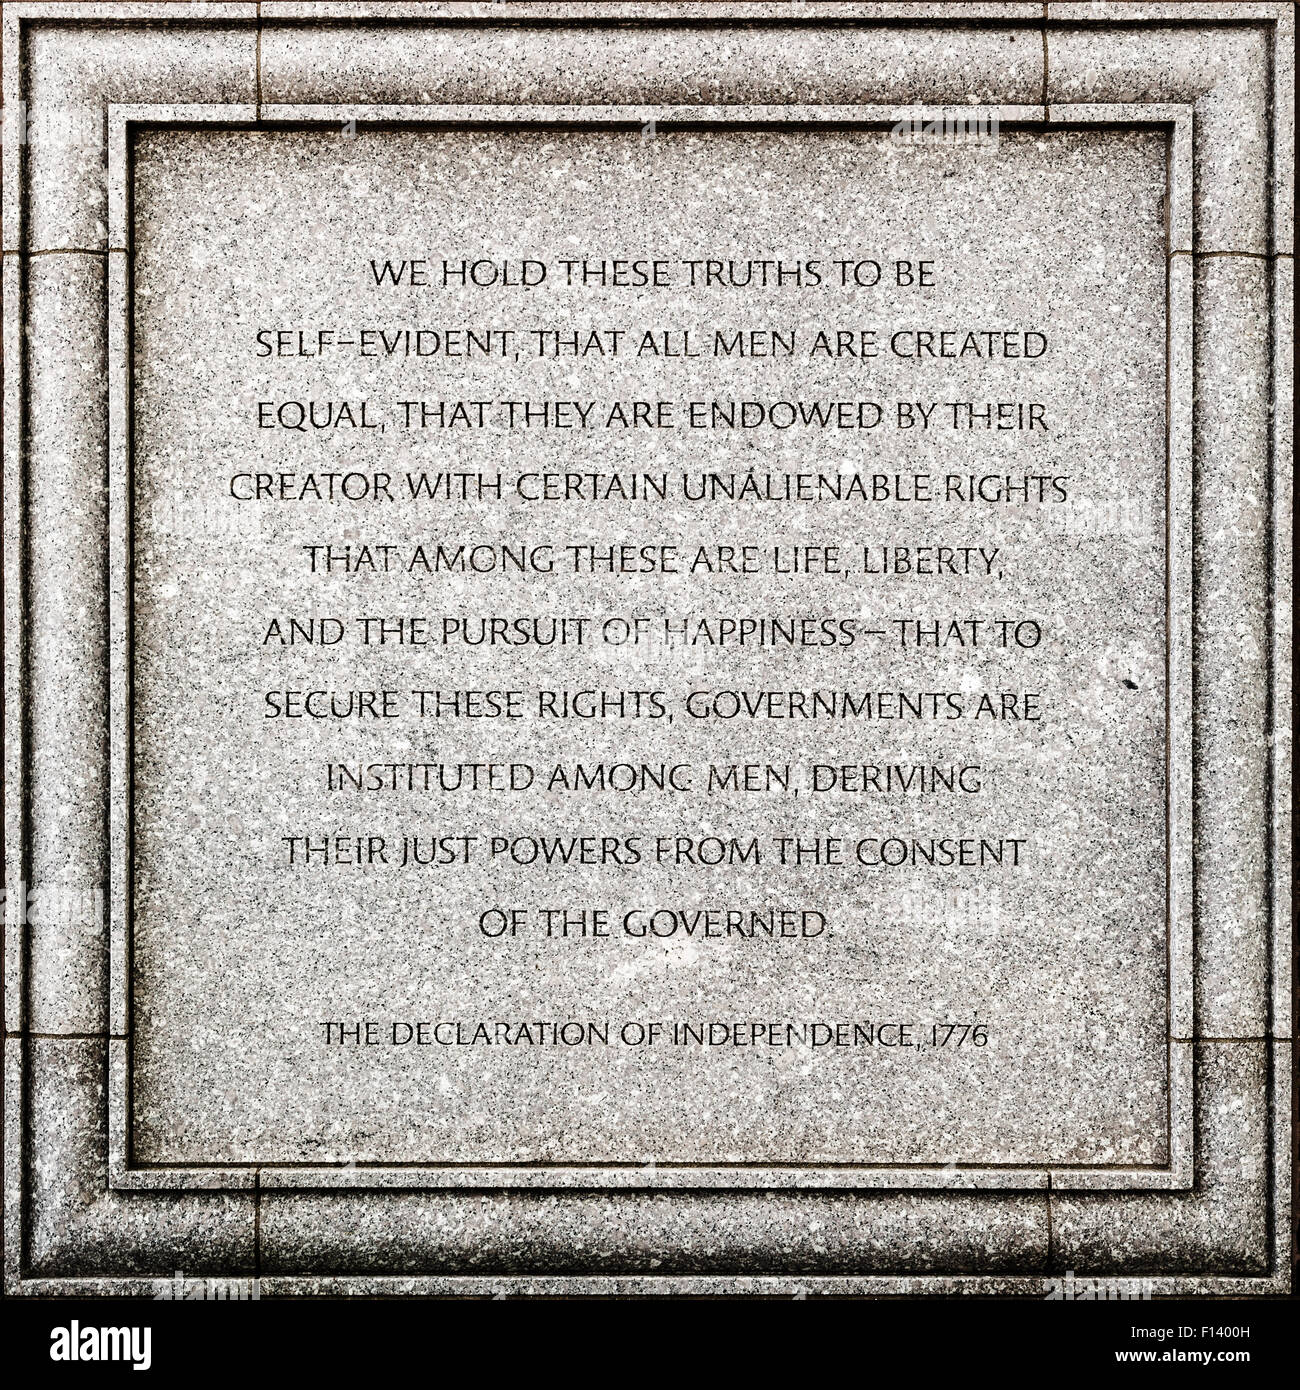 Outdoor detail of the John Joseph Moakley United States Courthouse in Boston - The declaration of Independence - Stock Image